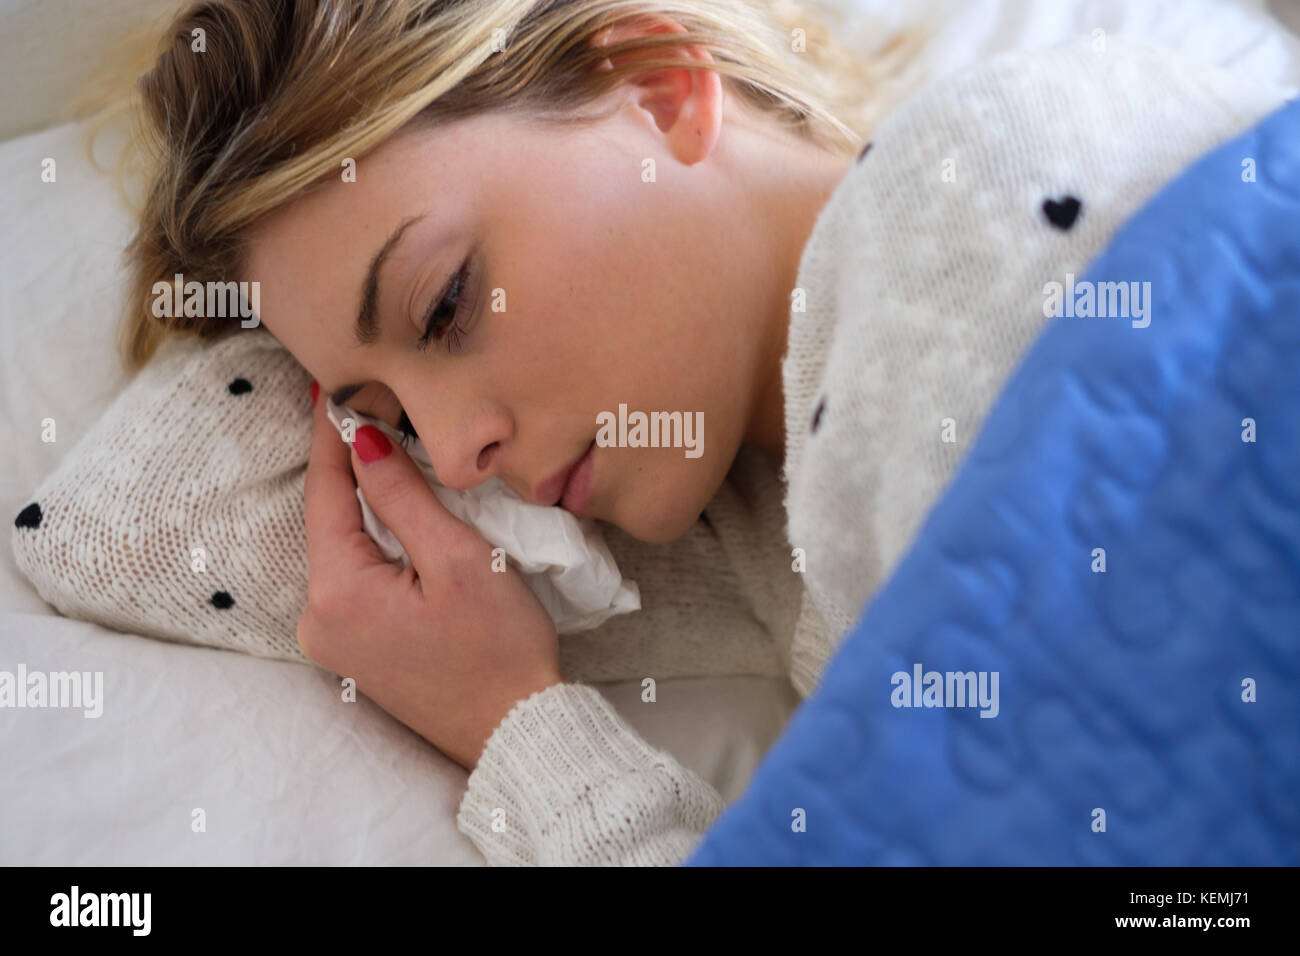 Young girl is crying and lying in the bed - Stock Image